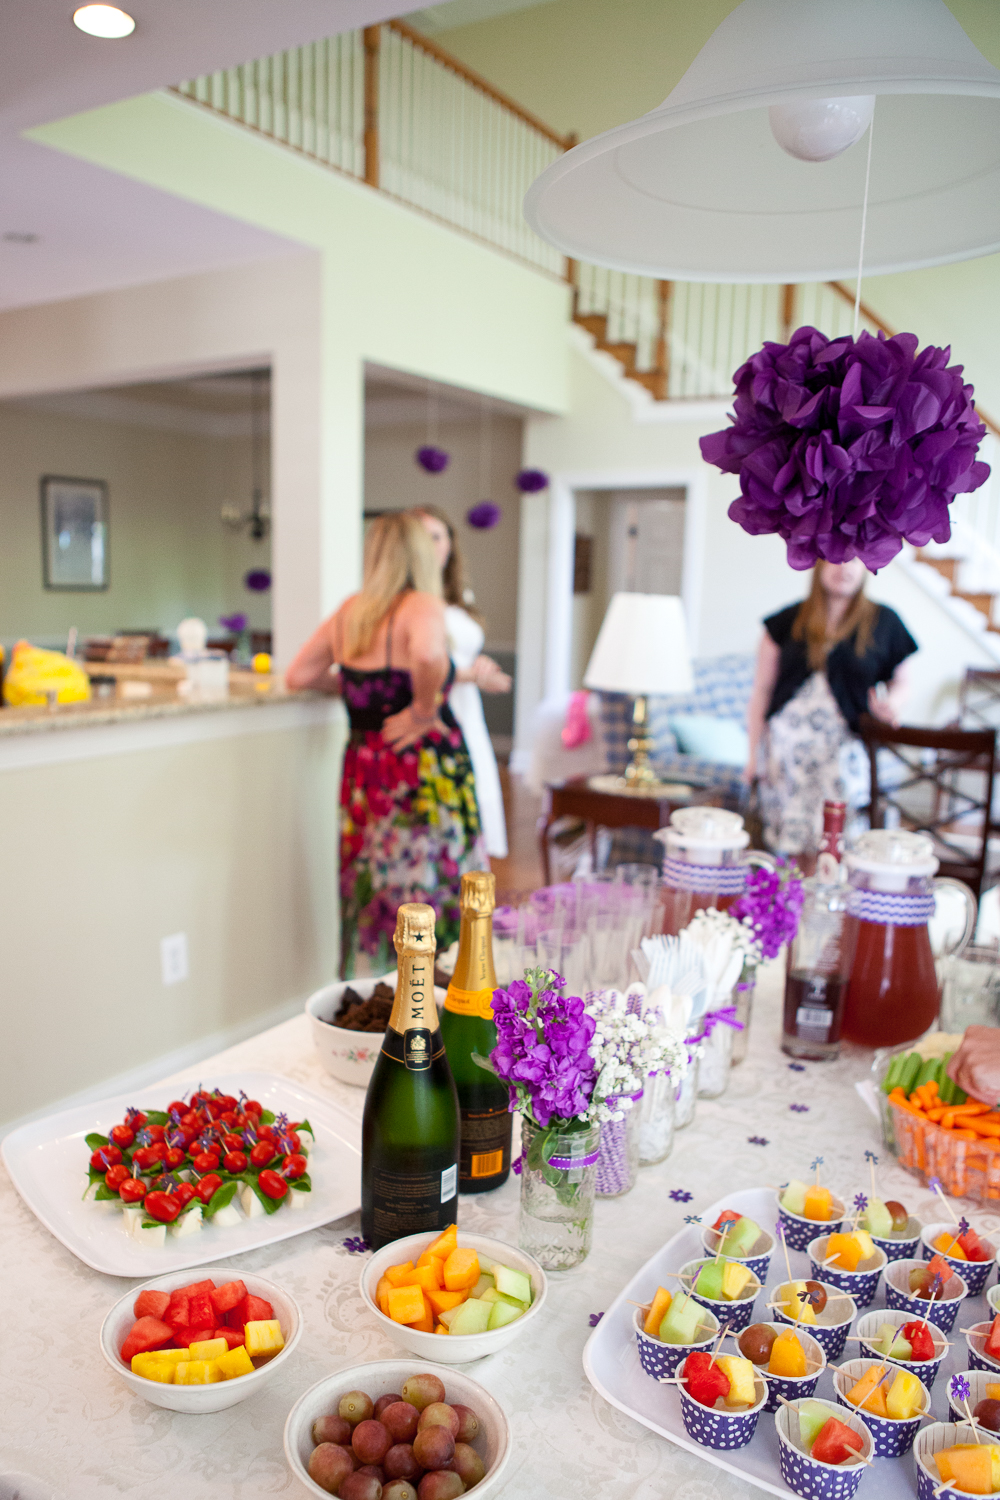 why-hire-a-photographer-for-your-bridal-shower-14.jpg